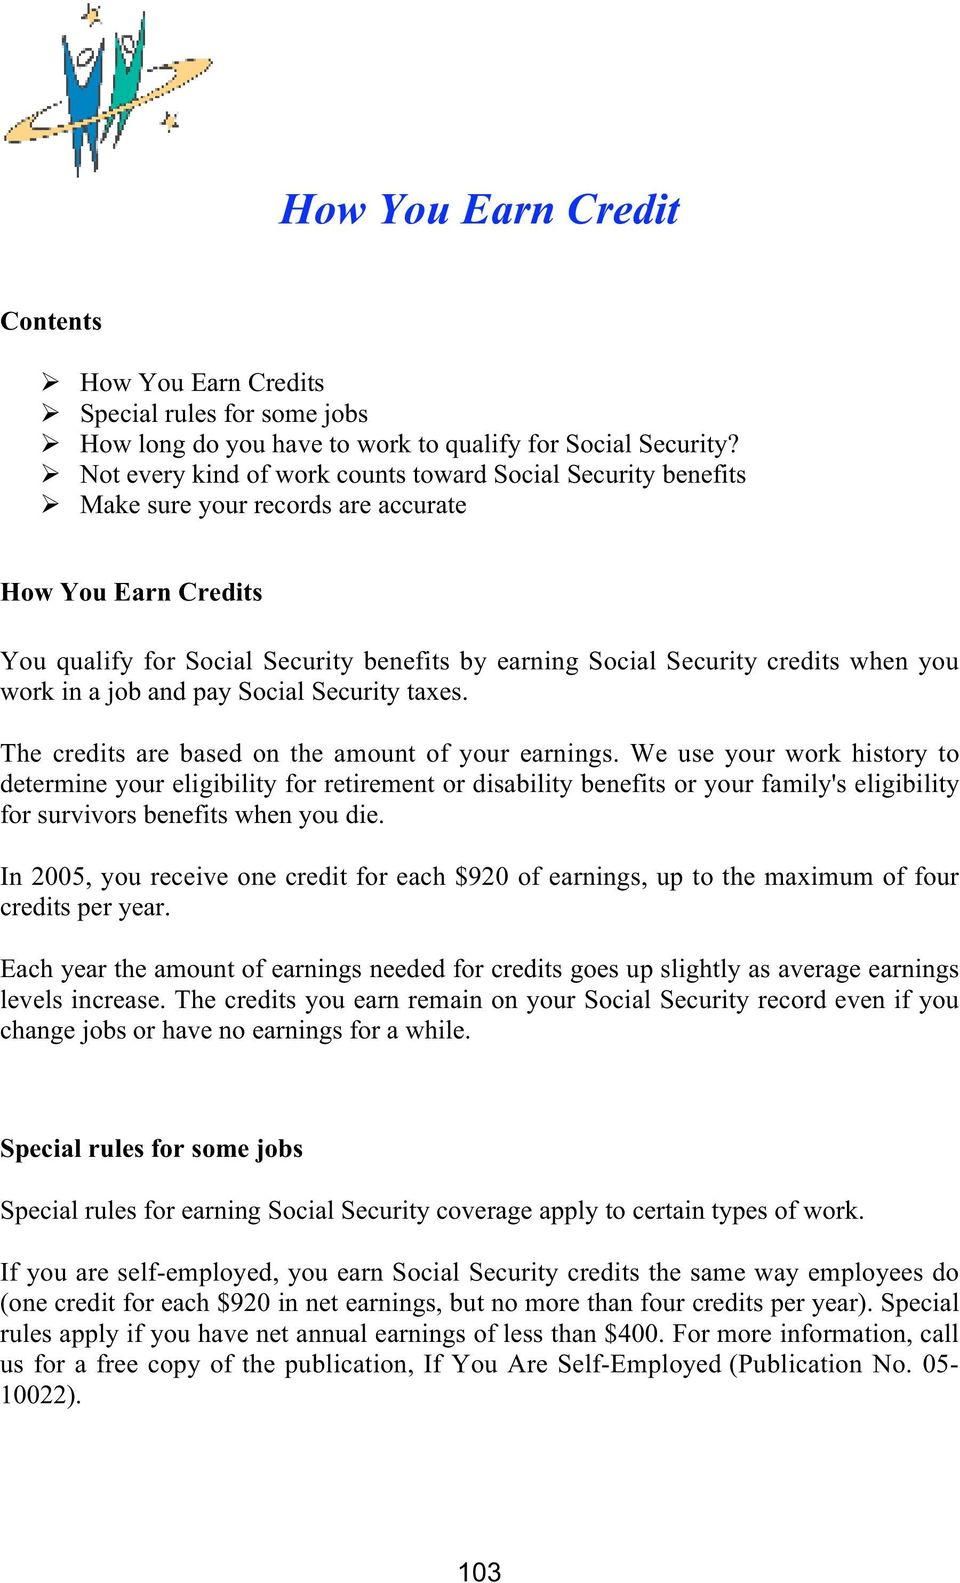 you work in a job and pay Social Security taxes. The credits are based on the amount of your earnings.